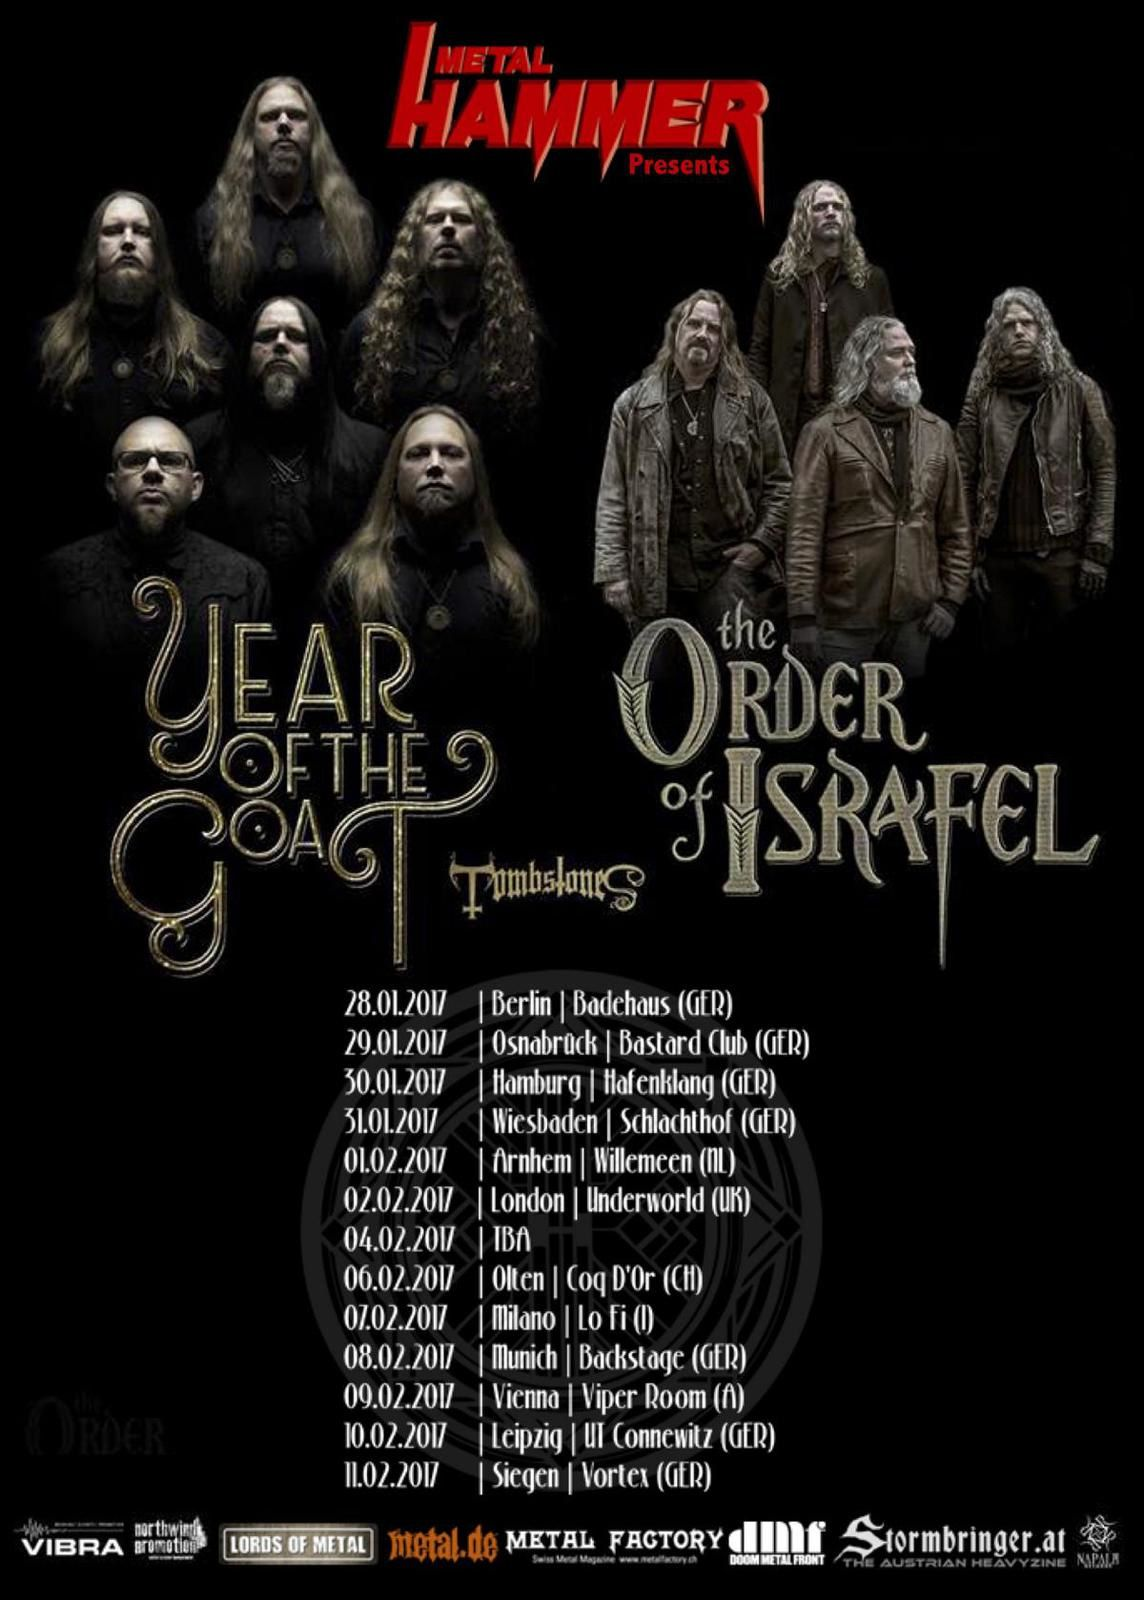 YEAR OF THE GOAT and THE ORDER OF ISRAFEL tour dates for Europe